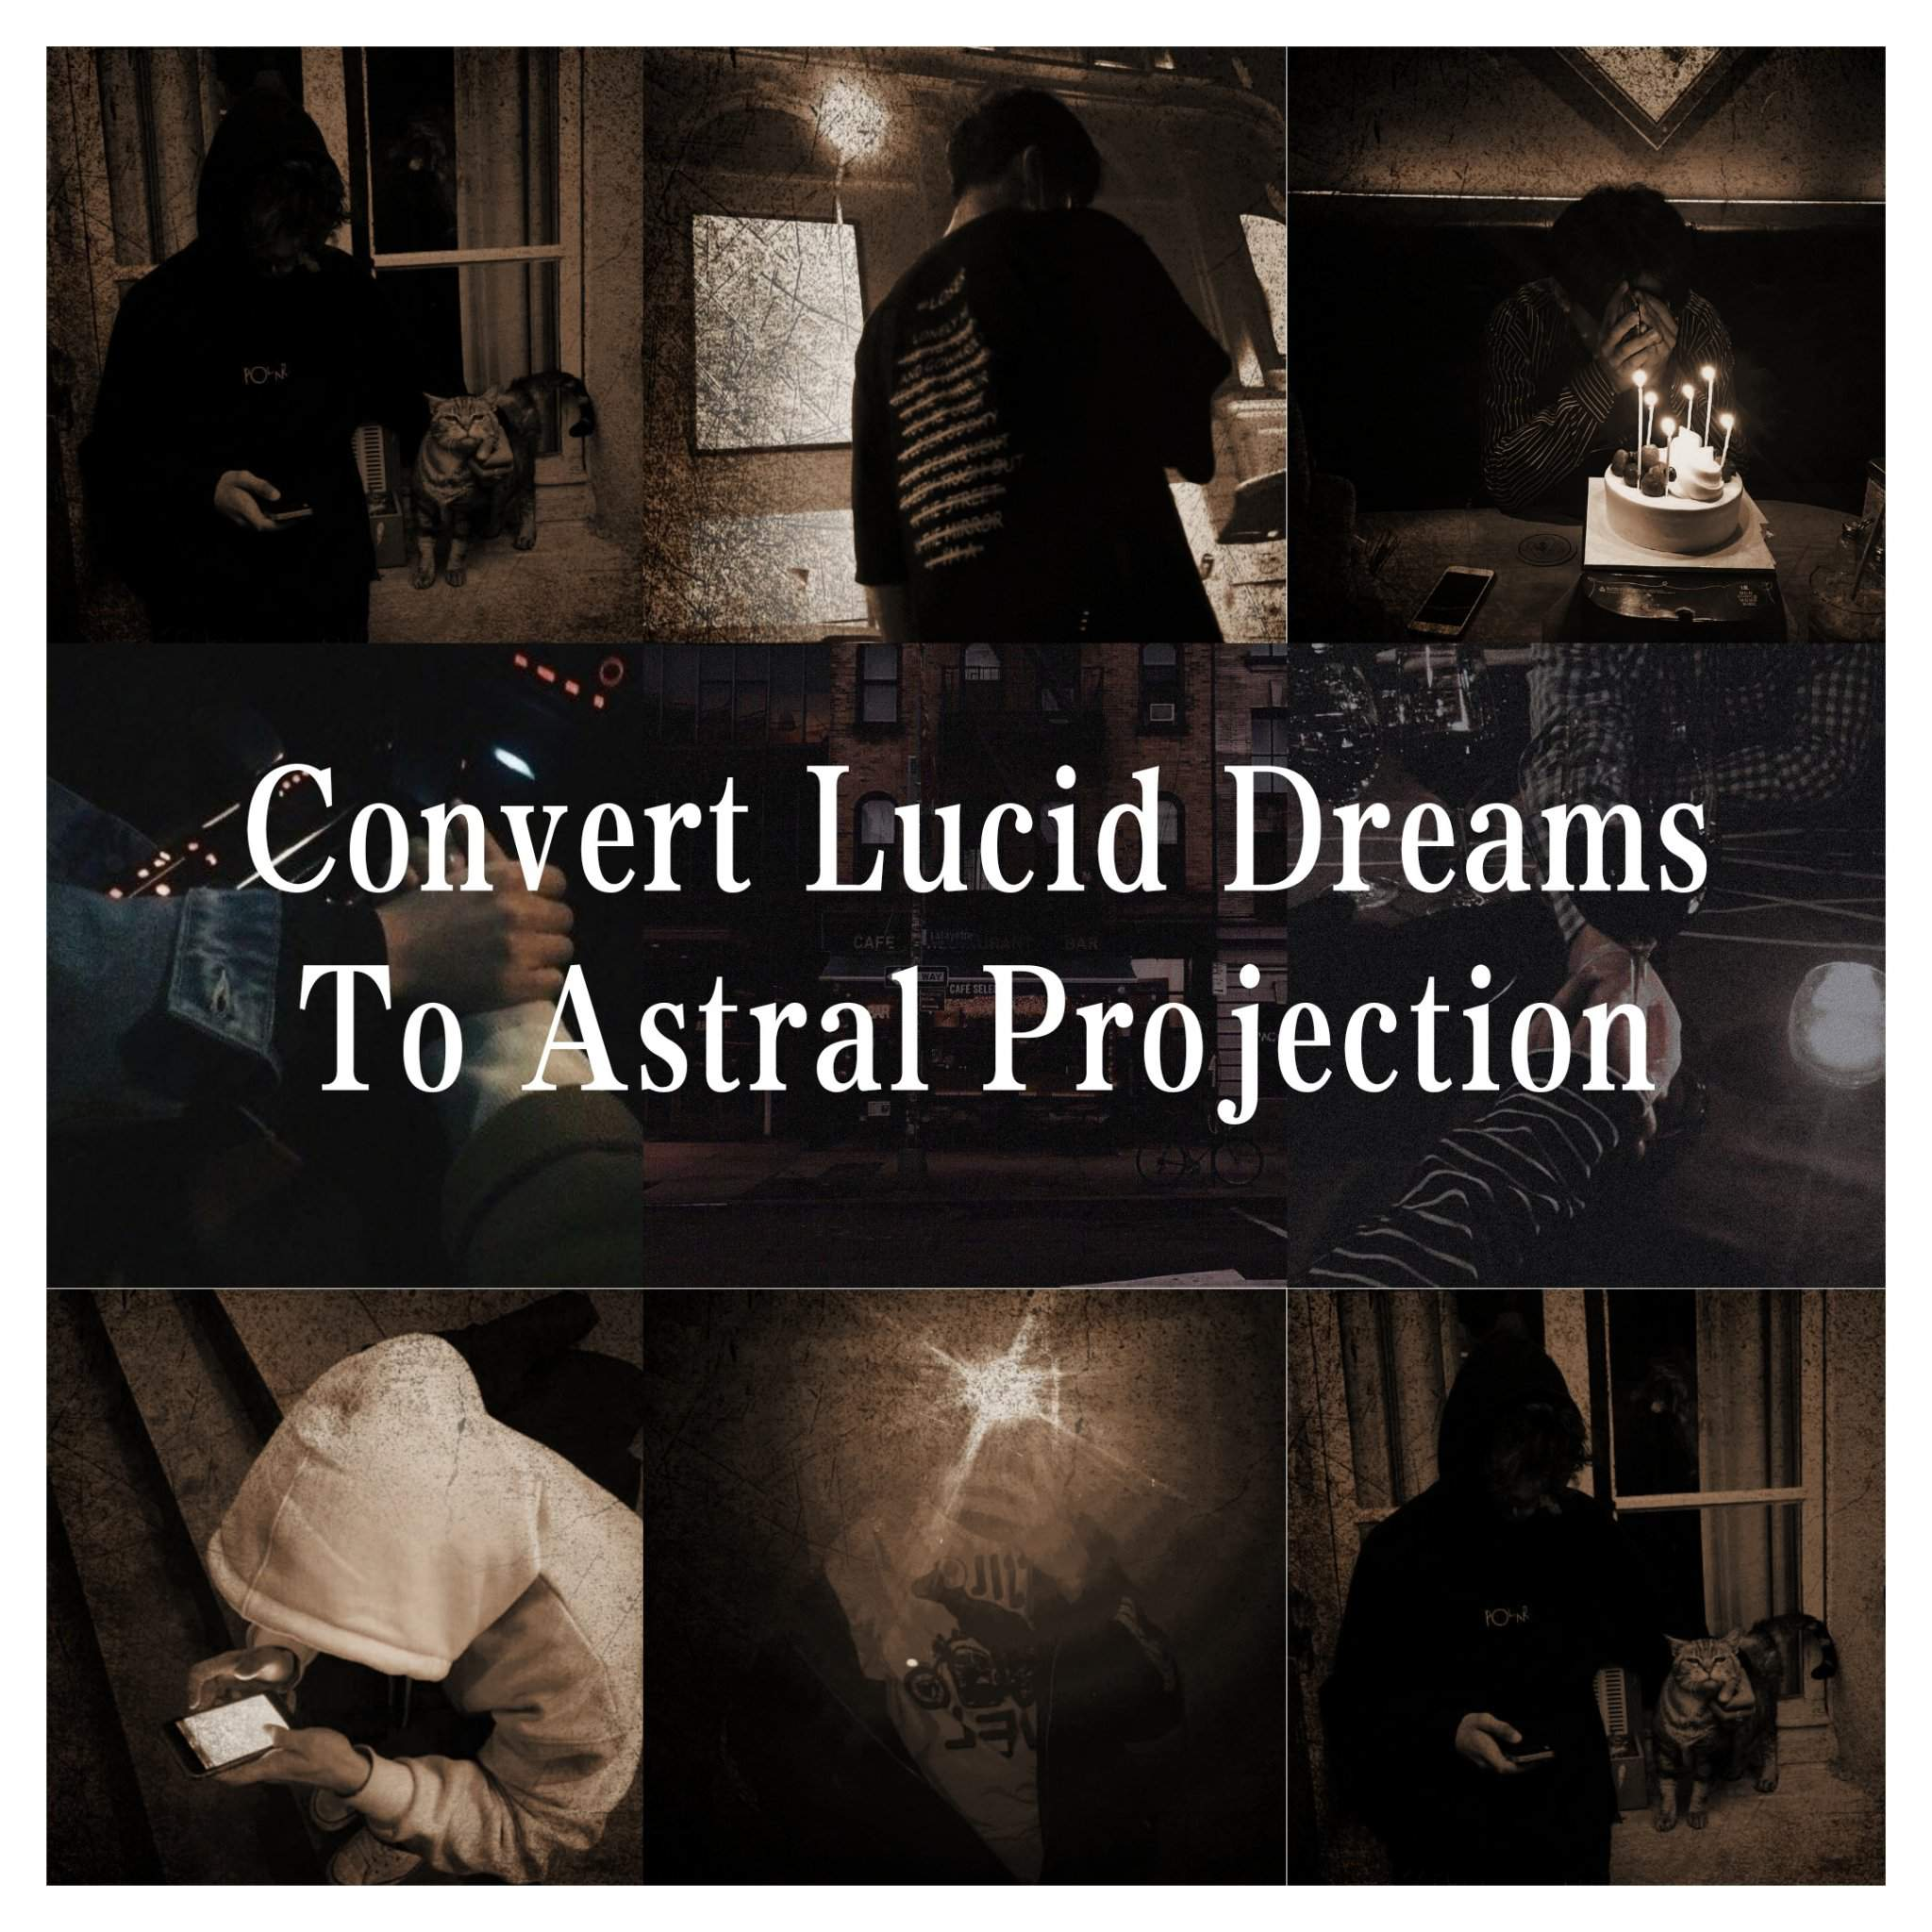 Convert Lucid Dreams To Astral Projection | Respawn/Dr Sub Users